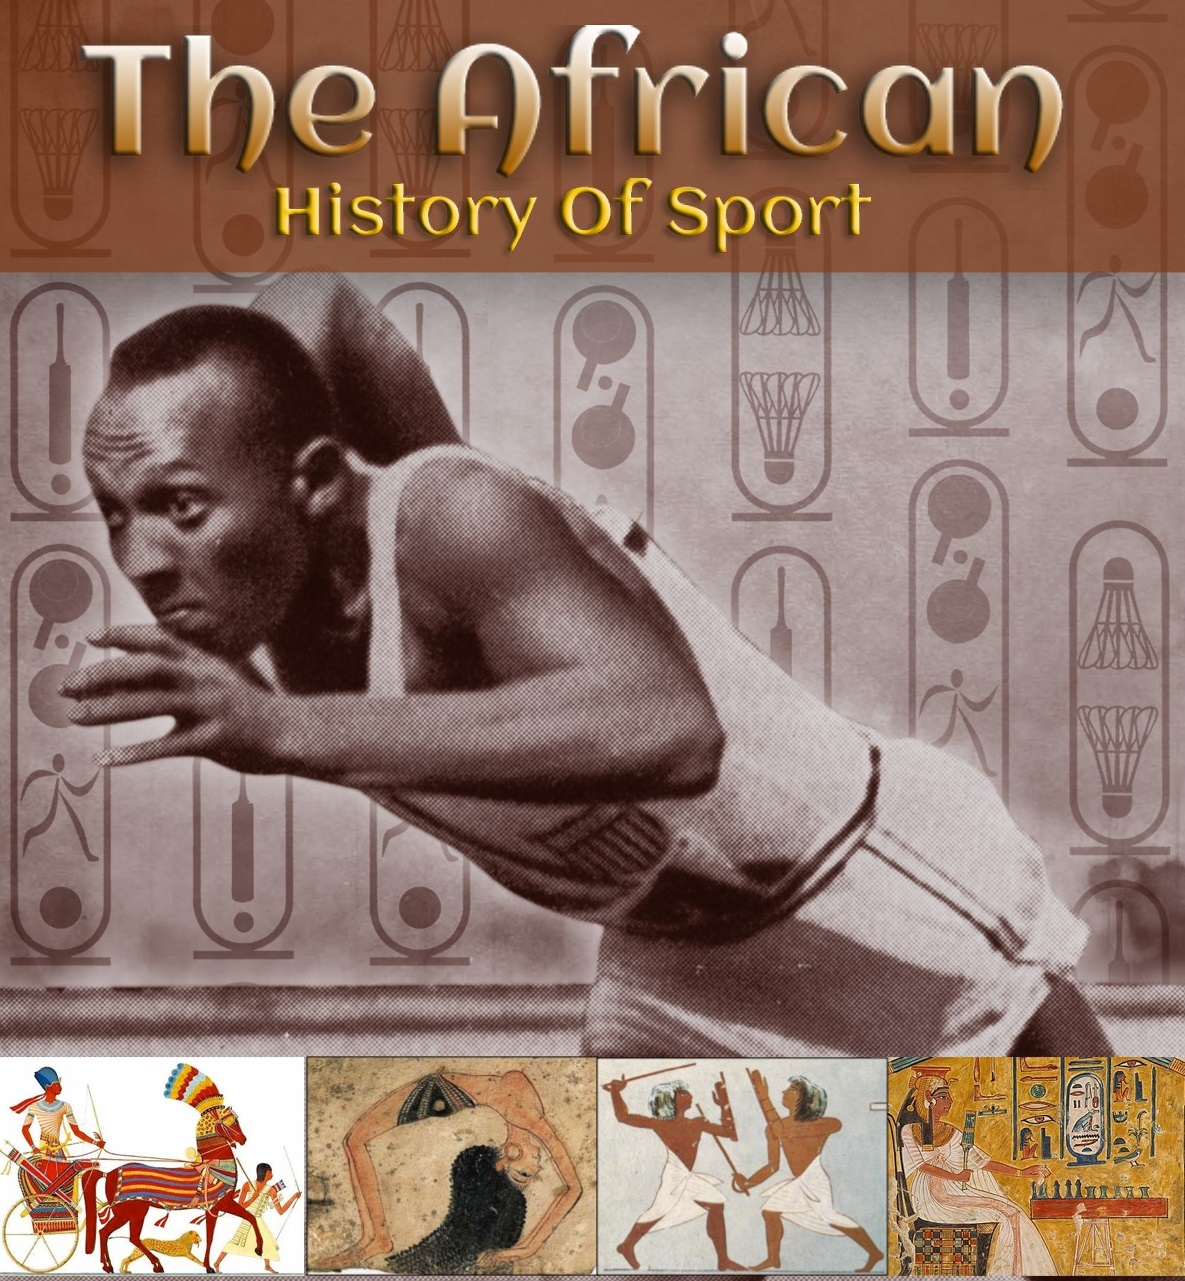 The African History of Sport